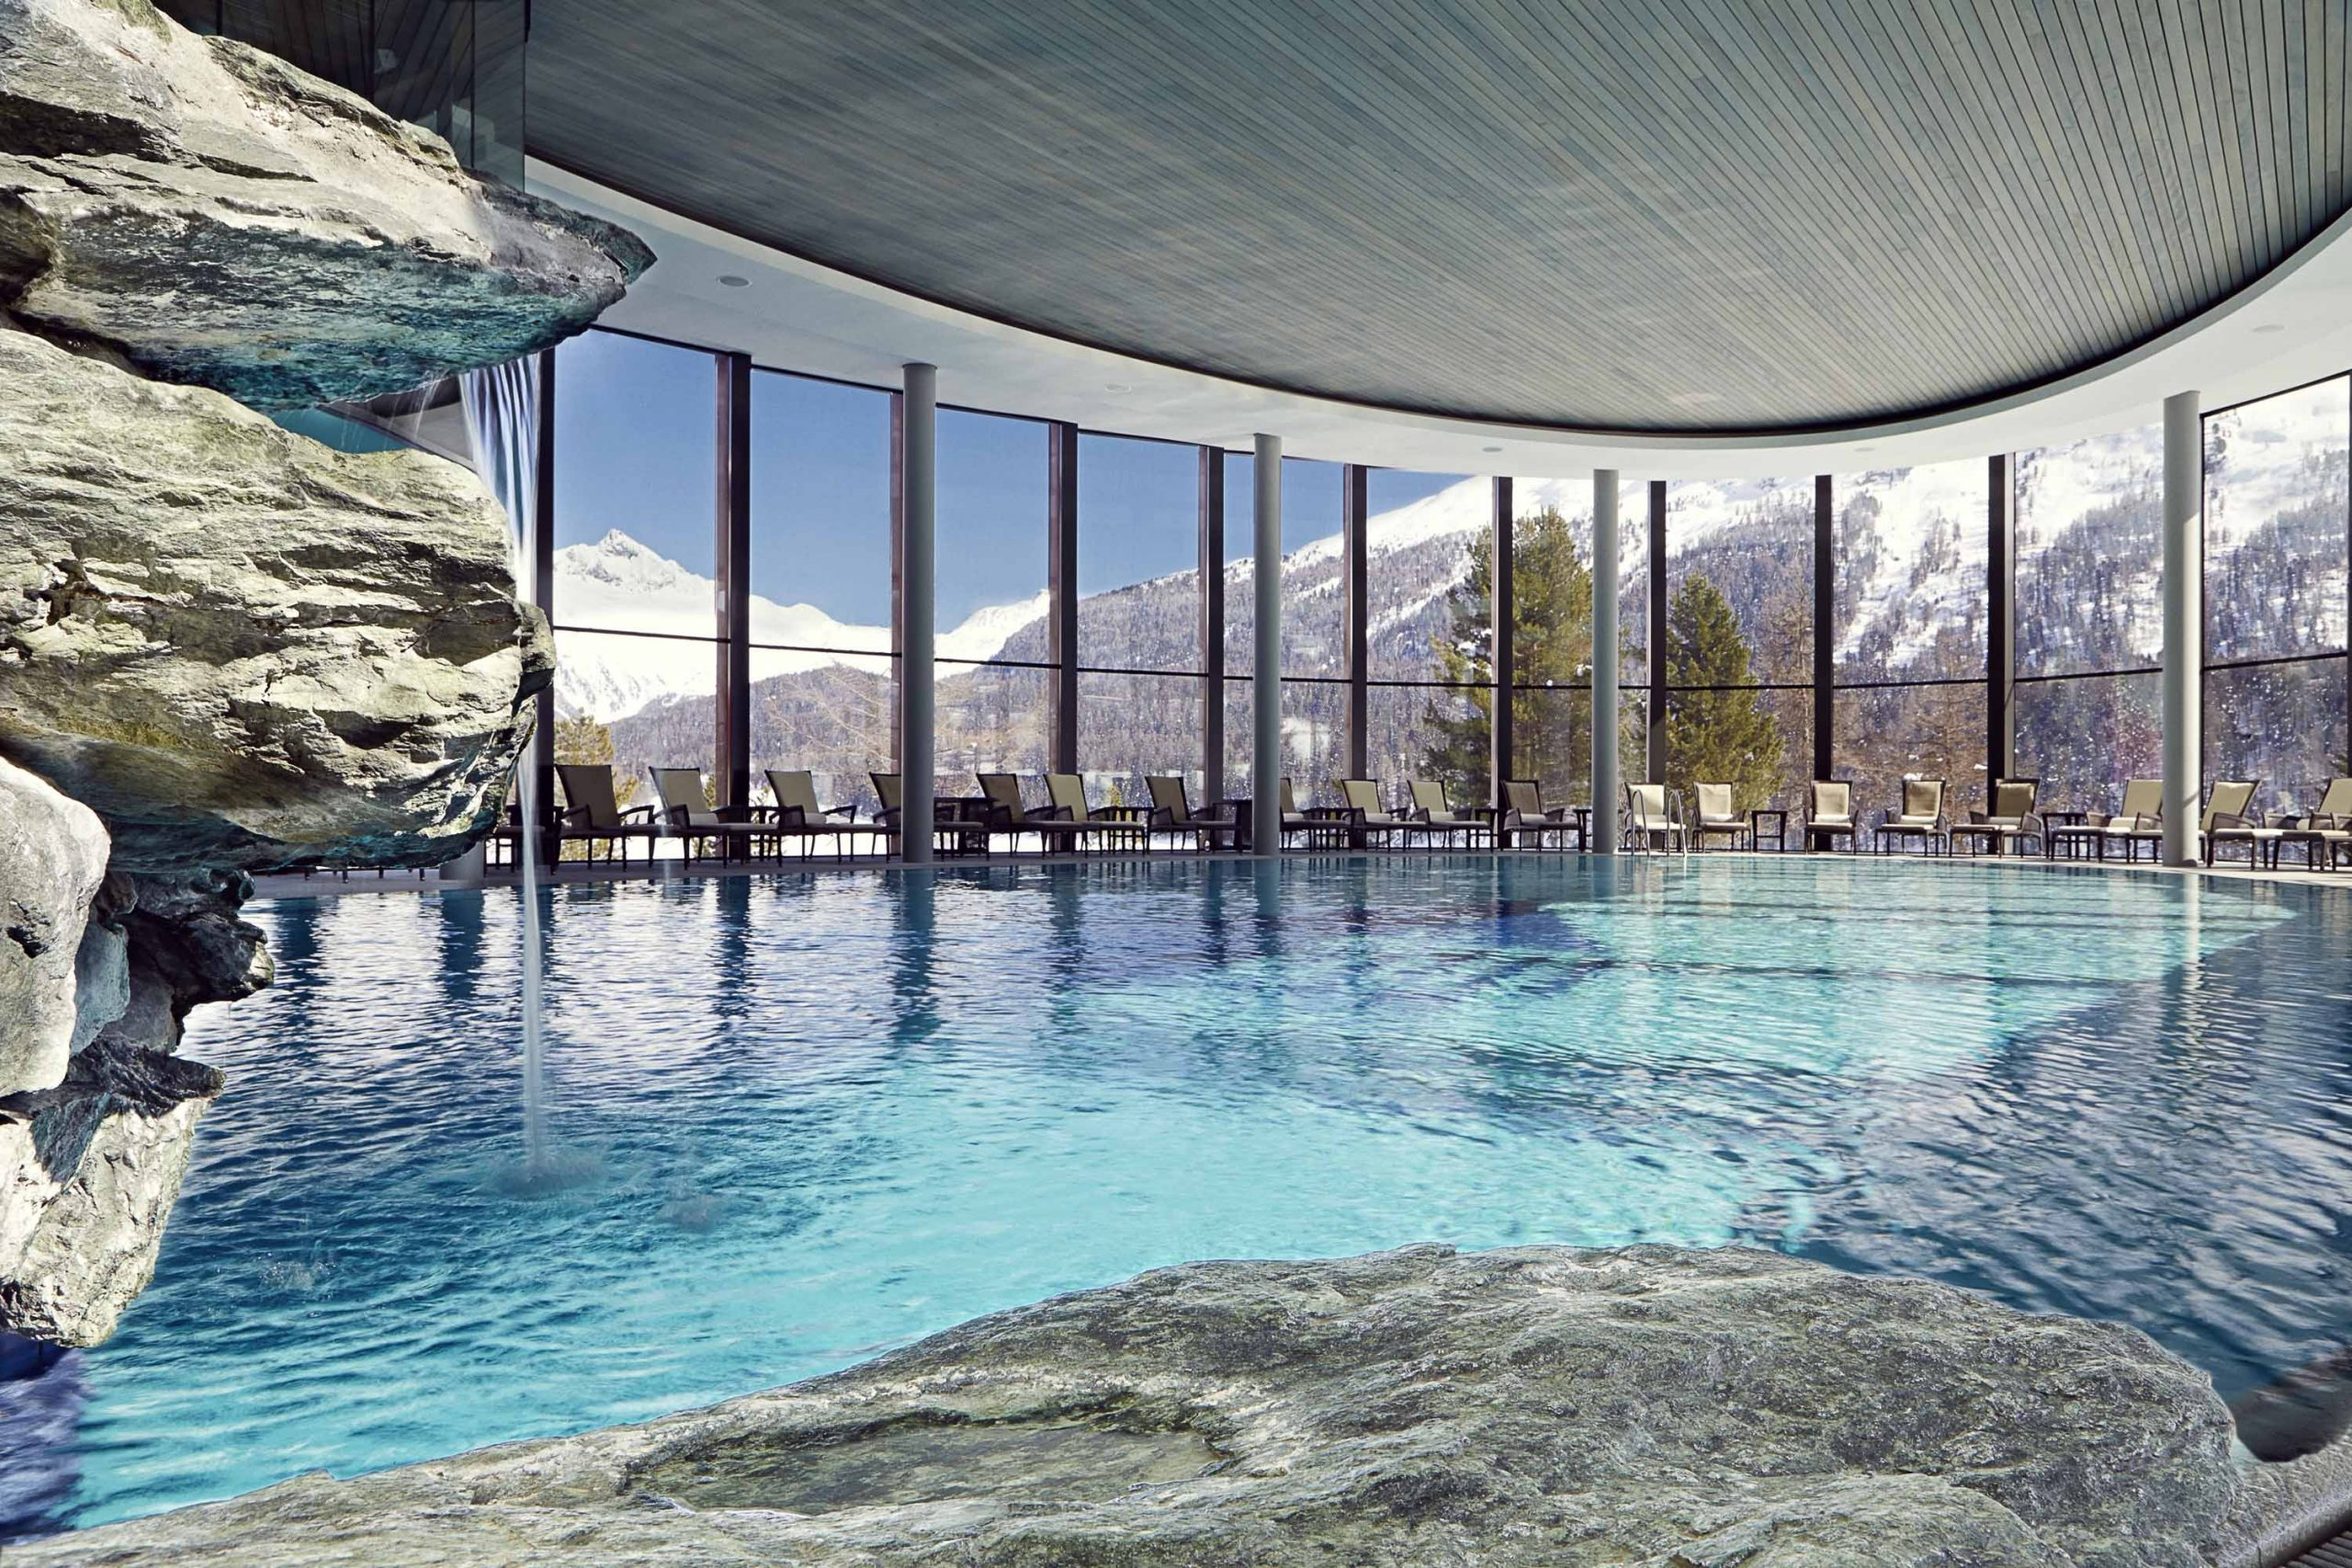 http://highend-traveller.com/the-top-10-resorts-to-visit-for-a-wellness-holiday/